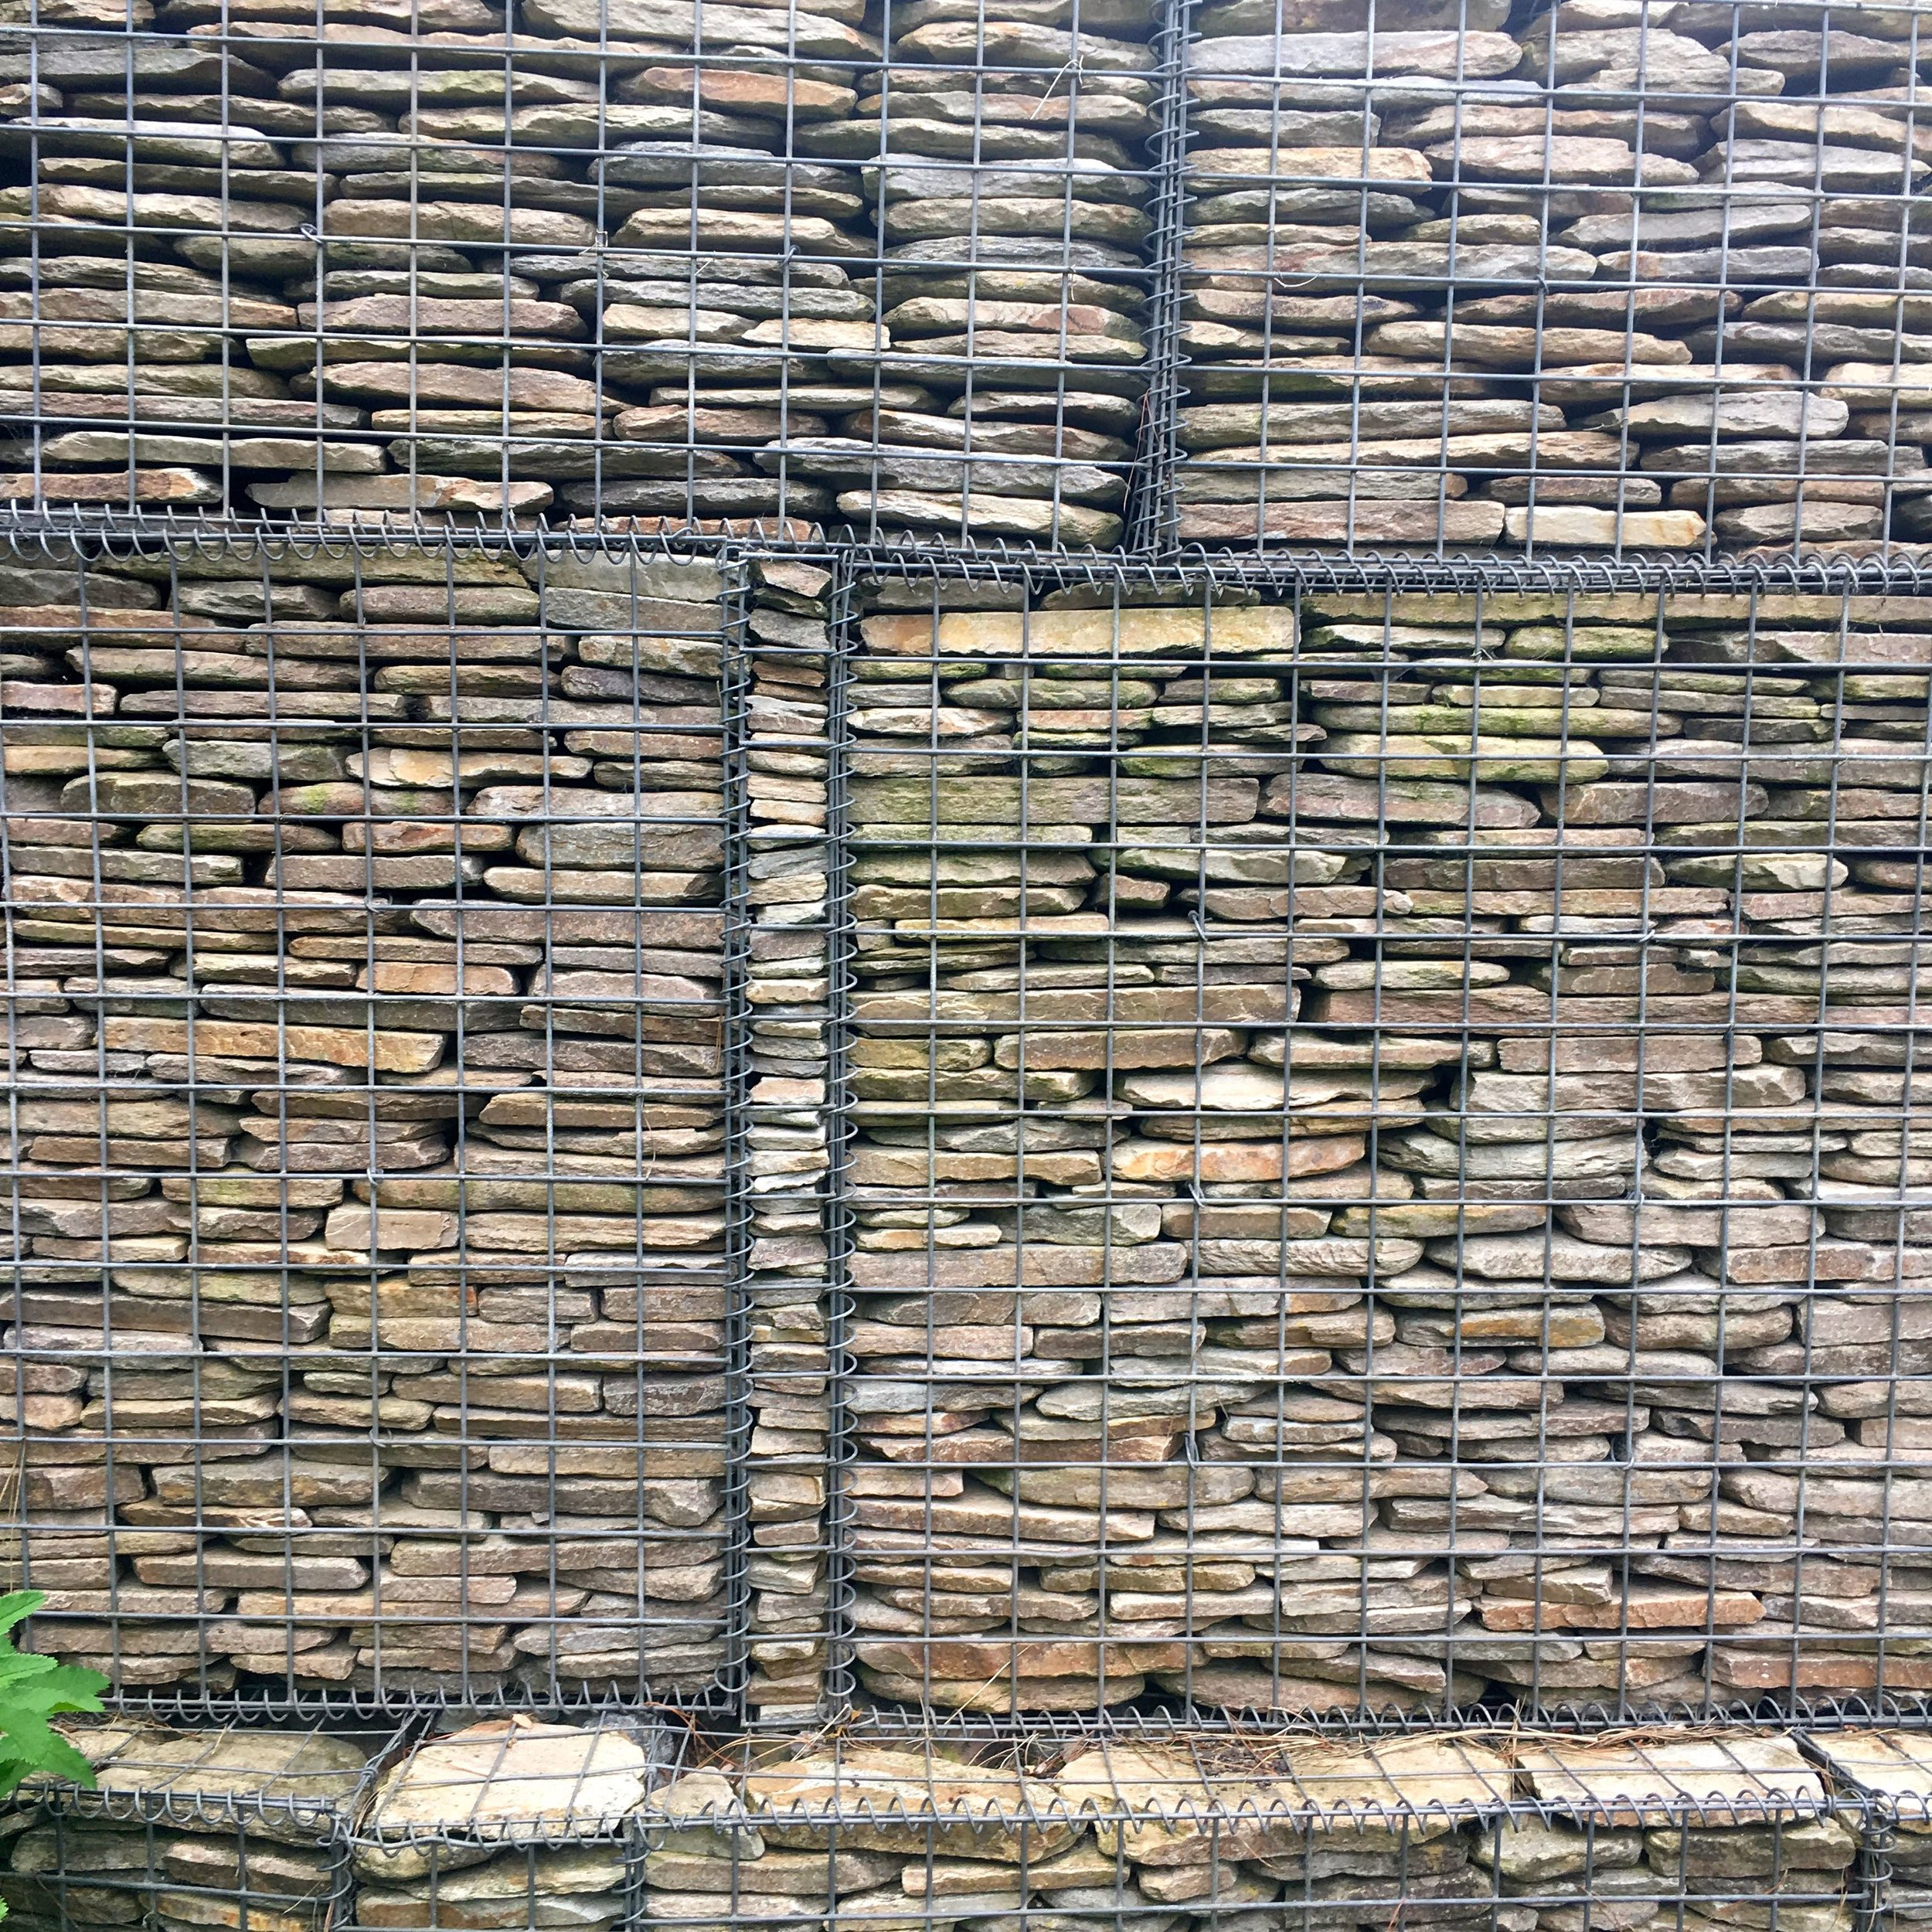 NEATLY STACKED GABION BASKETS IN THE ROBINSONS GARDEN